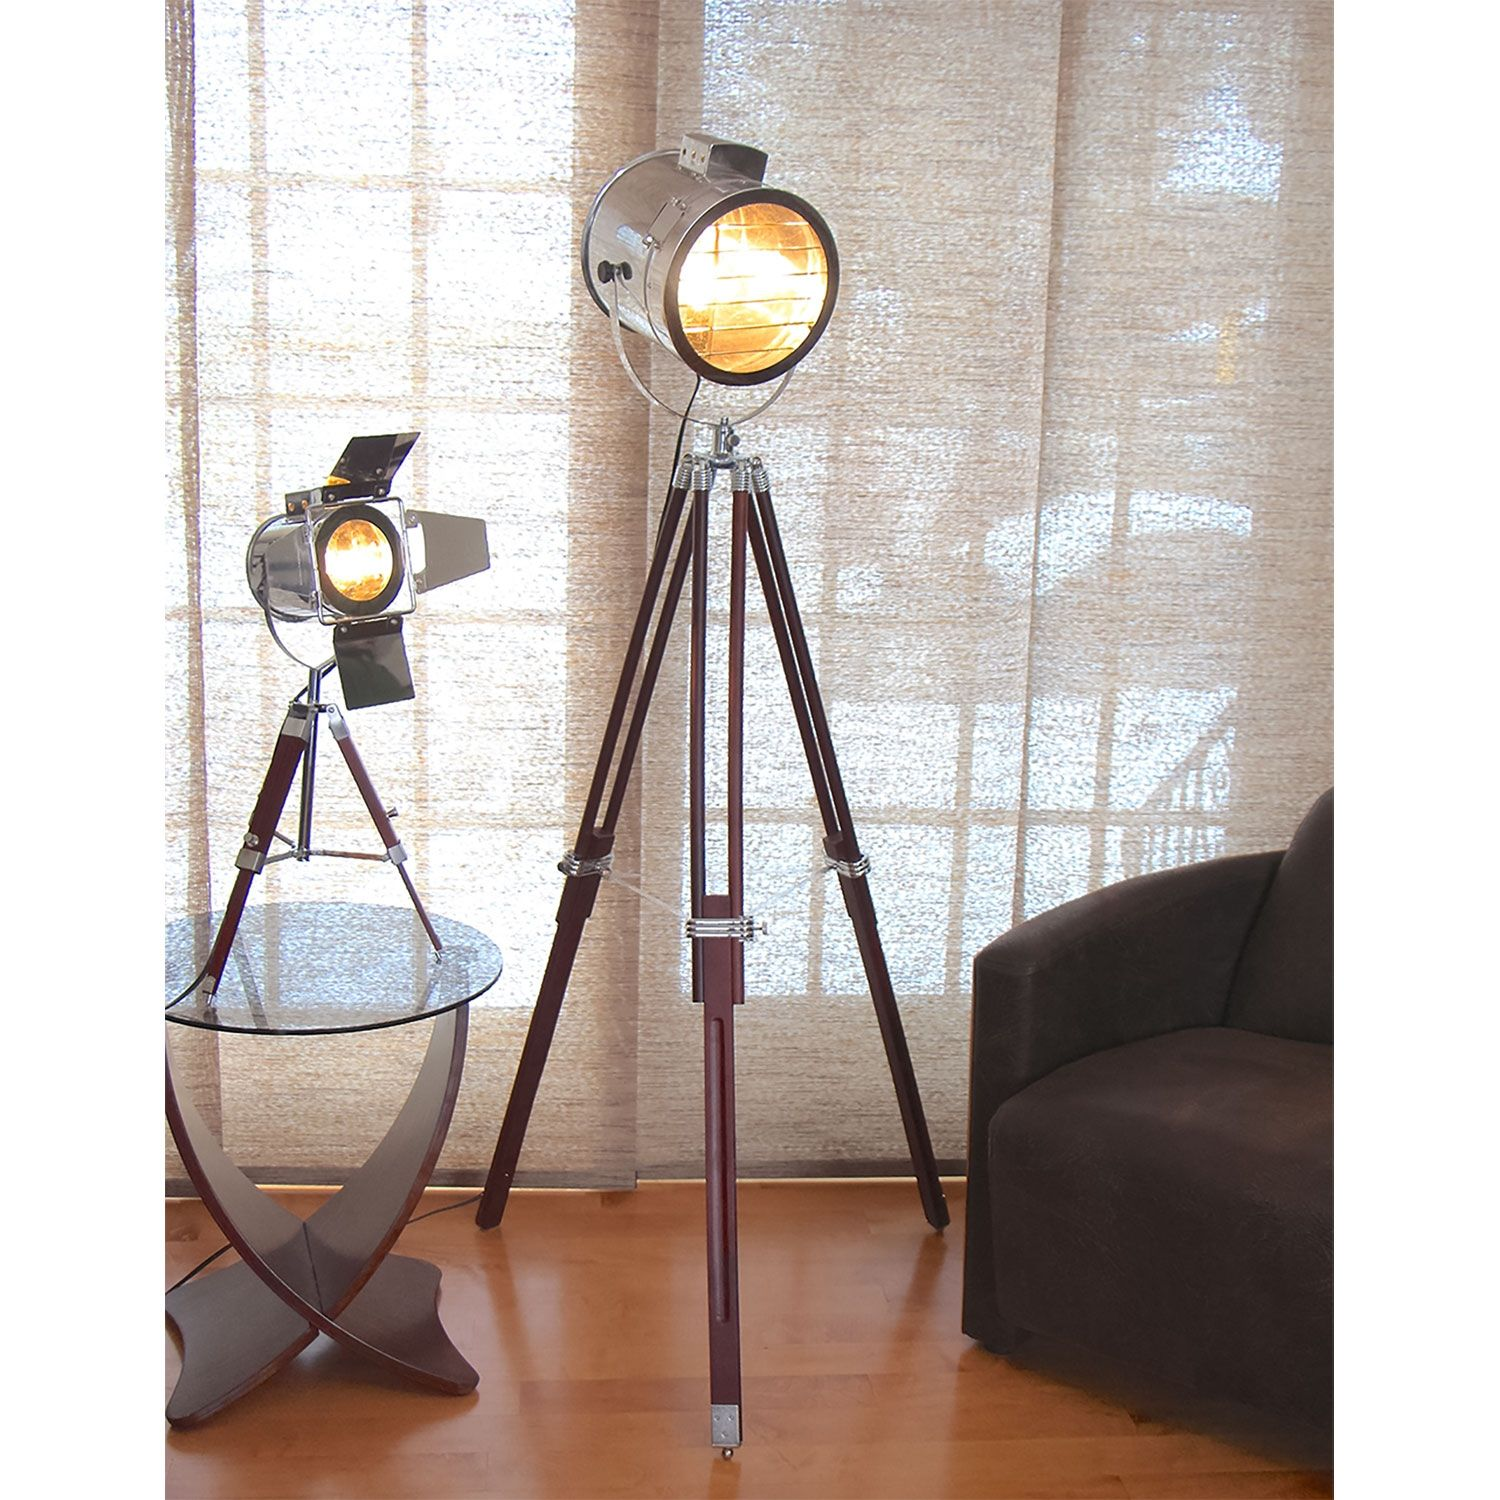 Keeping With The Current The Ahoy Adjustable Floor Lamp Is The